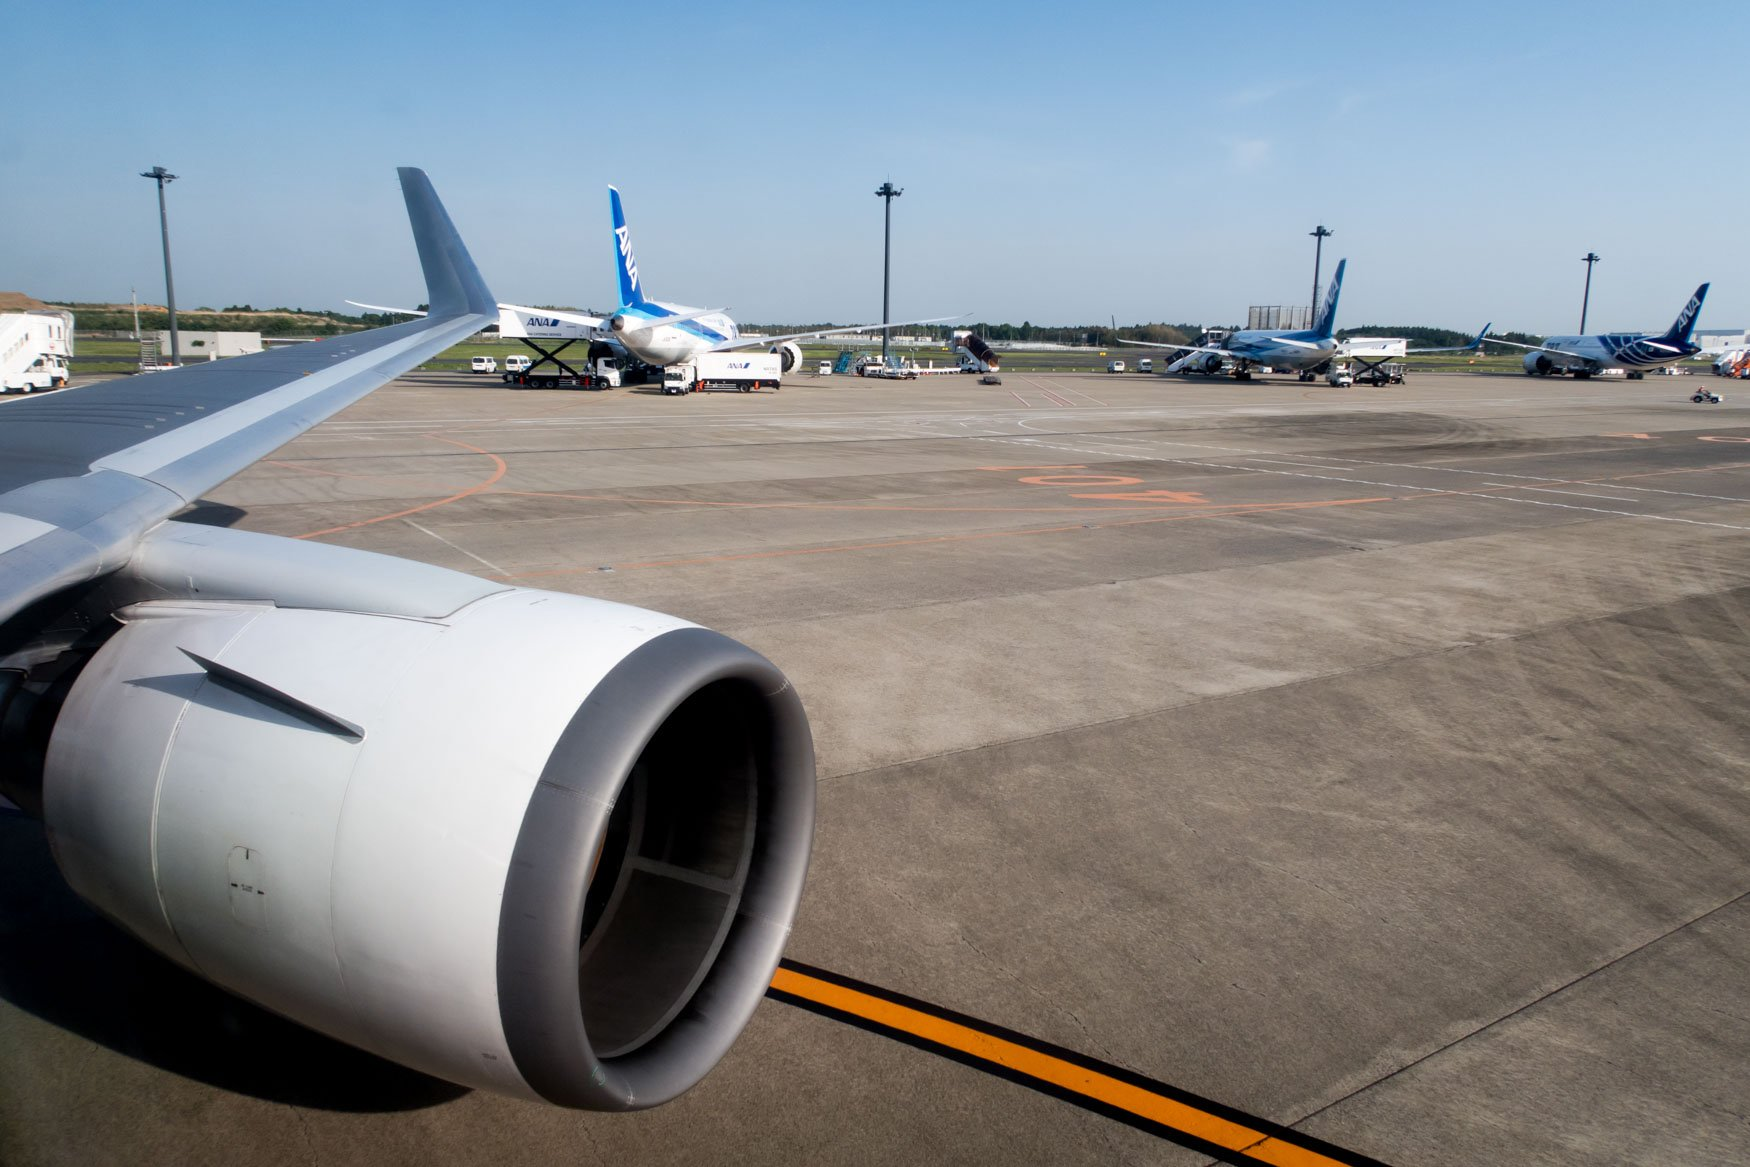 Taxiing to Gate